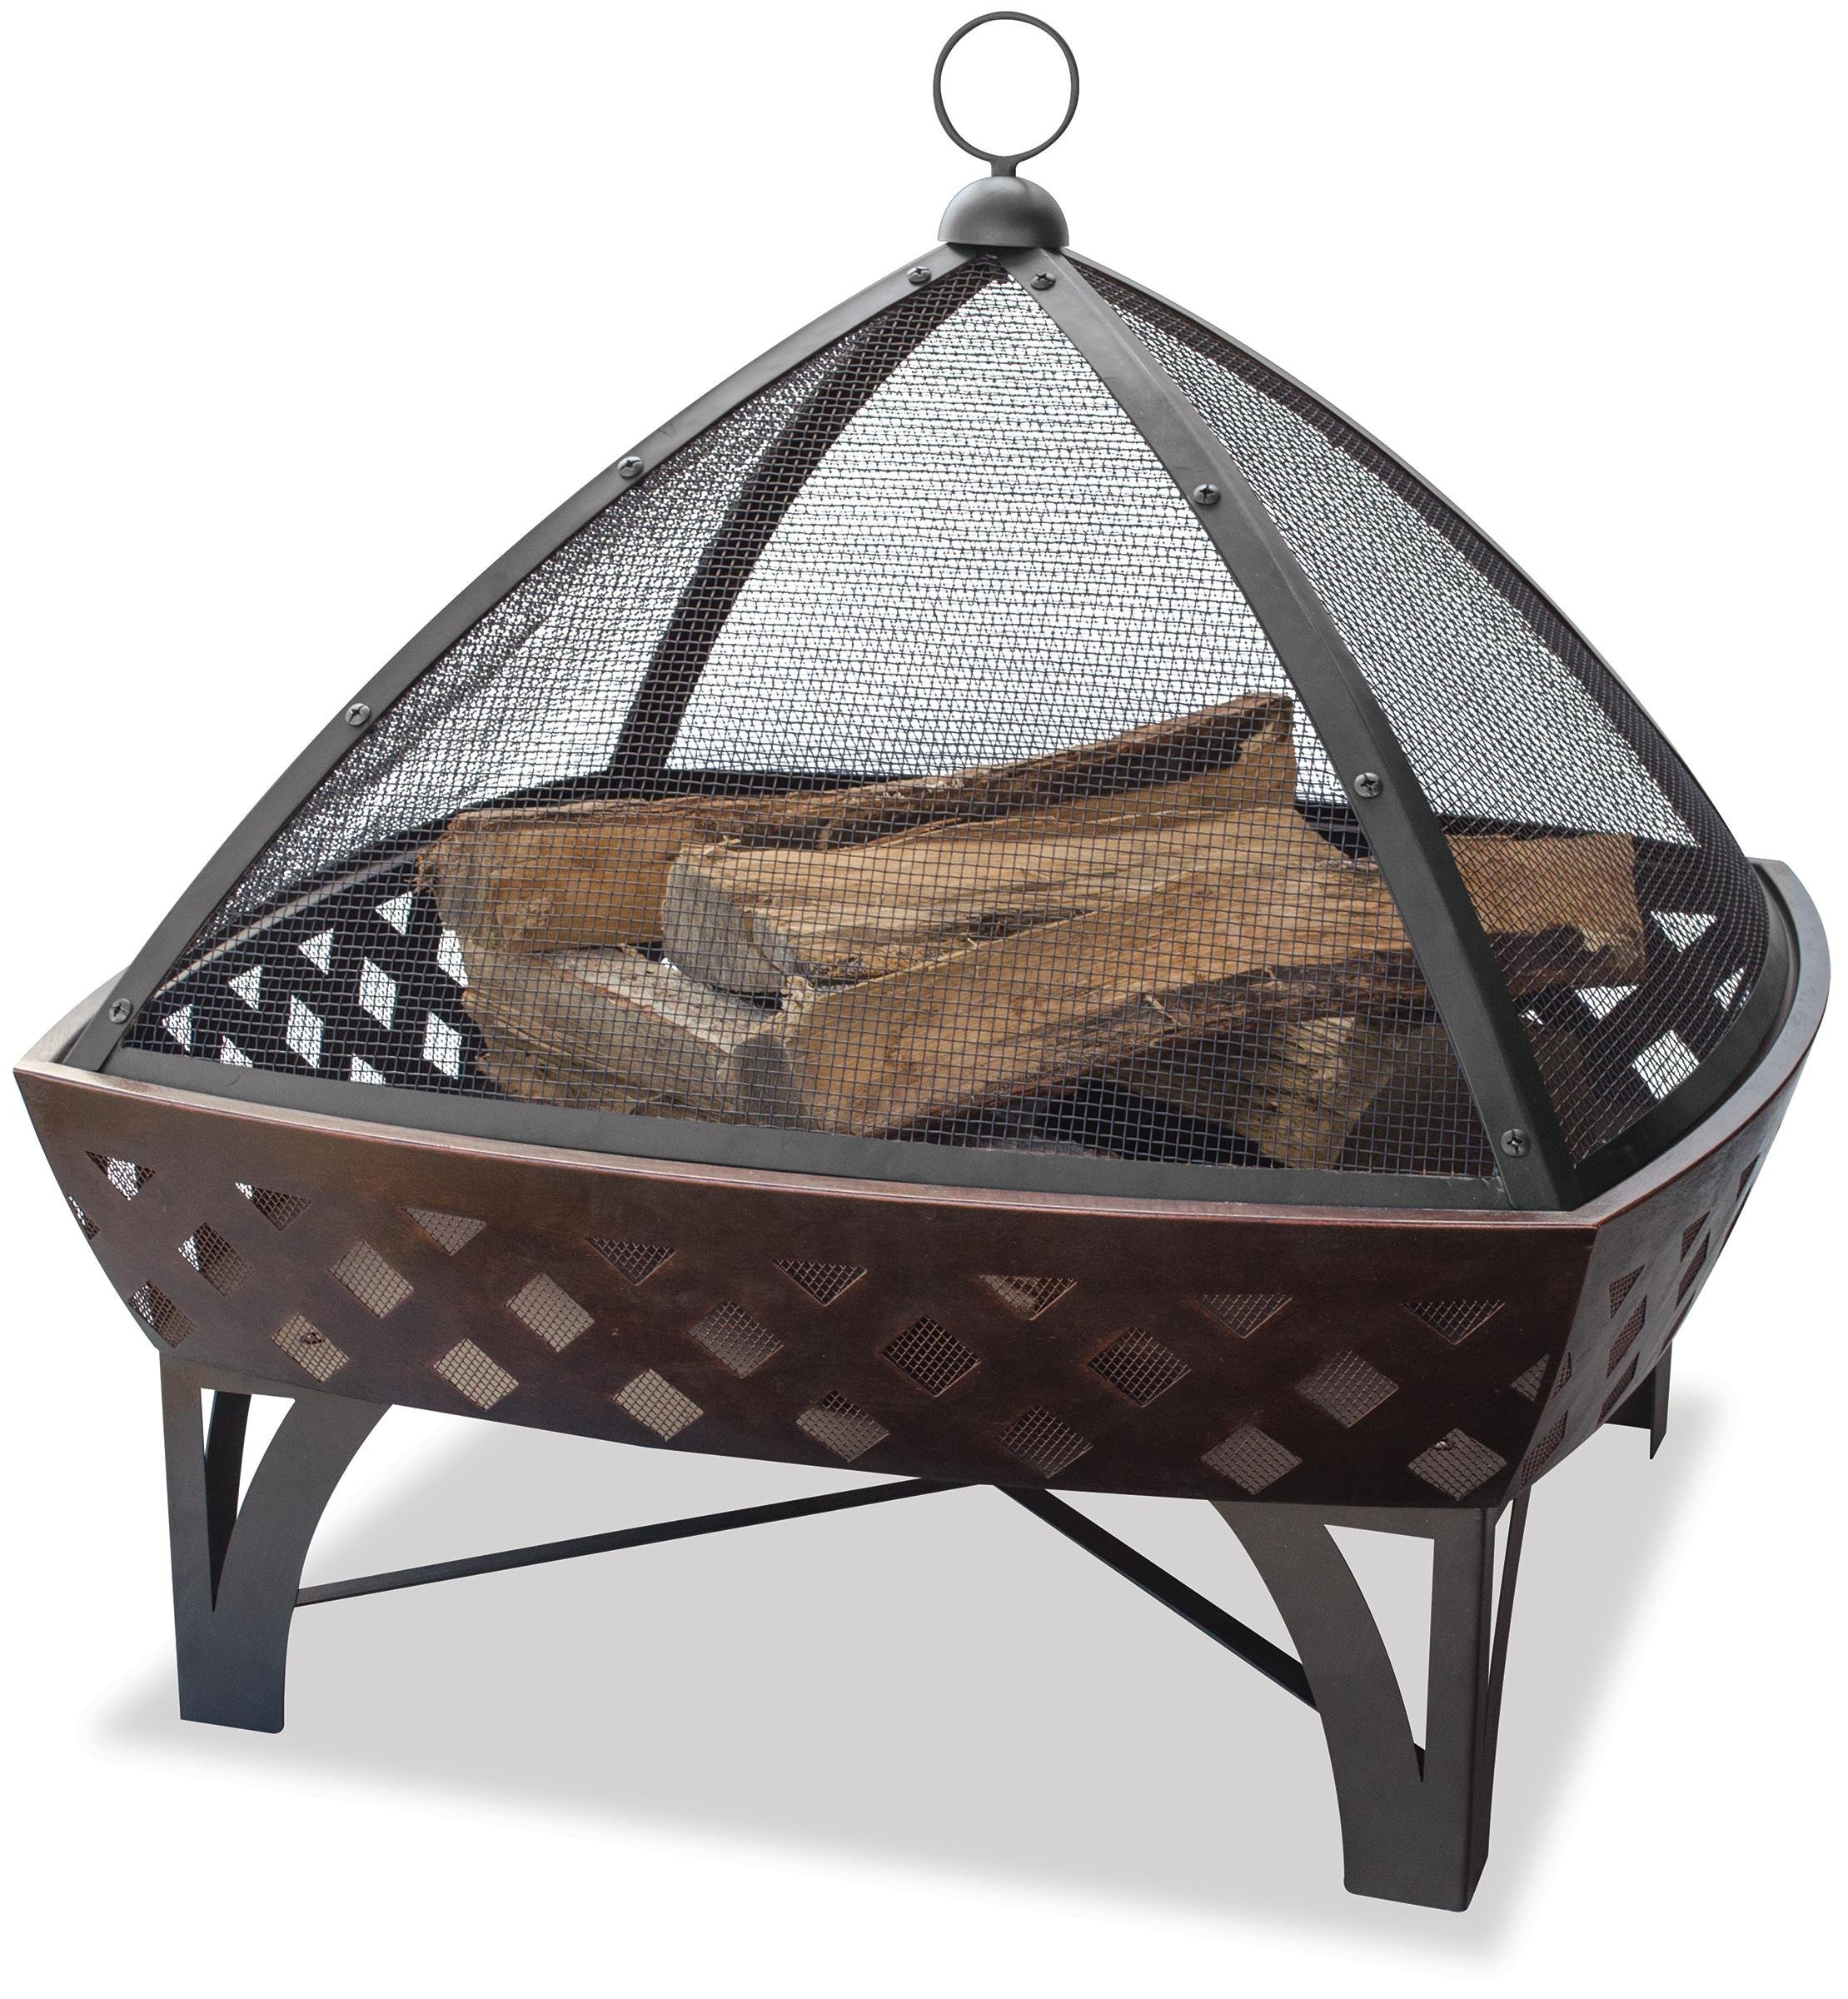 Endless Summer, WAD1401SP, Outdoor Fire Bowl with Lattice, Oil Rubbed Bronze - 29.5 in. diameter bowl Wood burning for convenient heating Spark guard included for safety - patio, outdoor-decor, fire-pits-outdoor-fireplaces - 91sE0B4rogL -